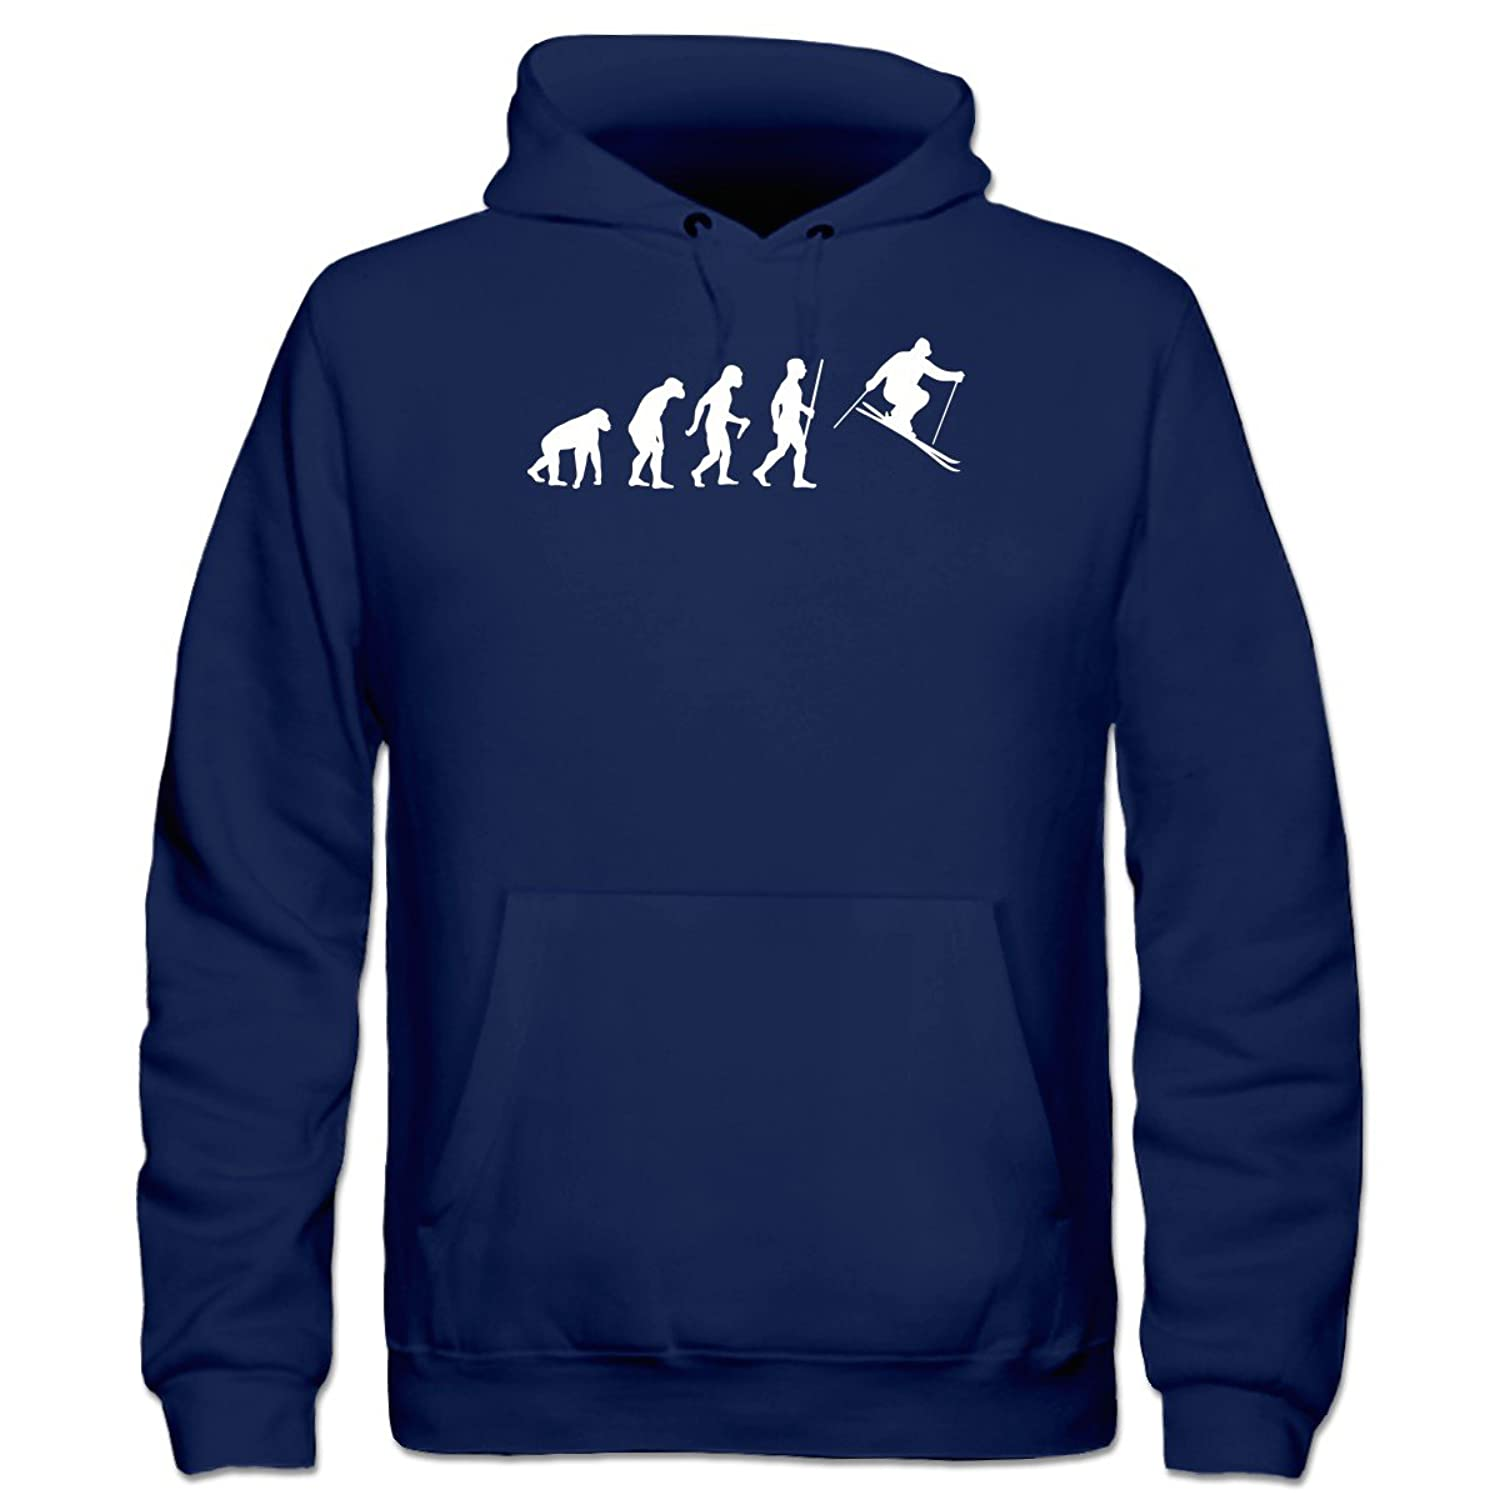 Ski Evolution Humor Kinder Kapuzenpulli by Shirtcity